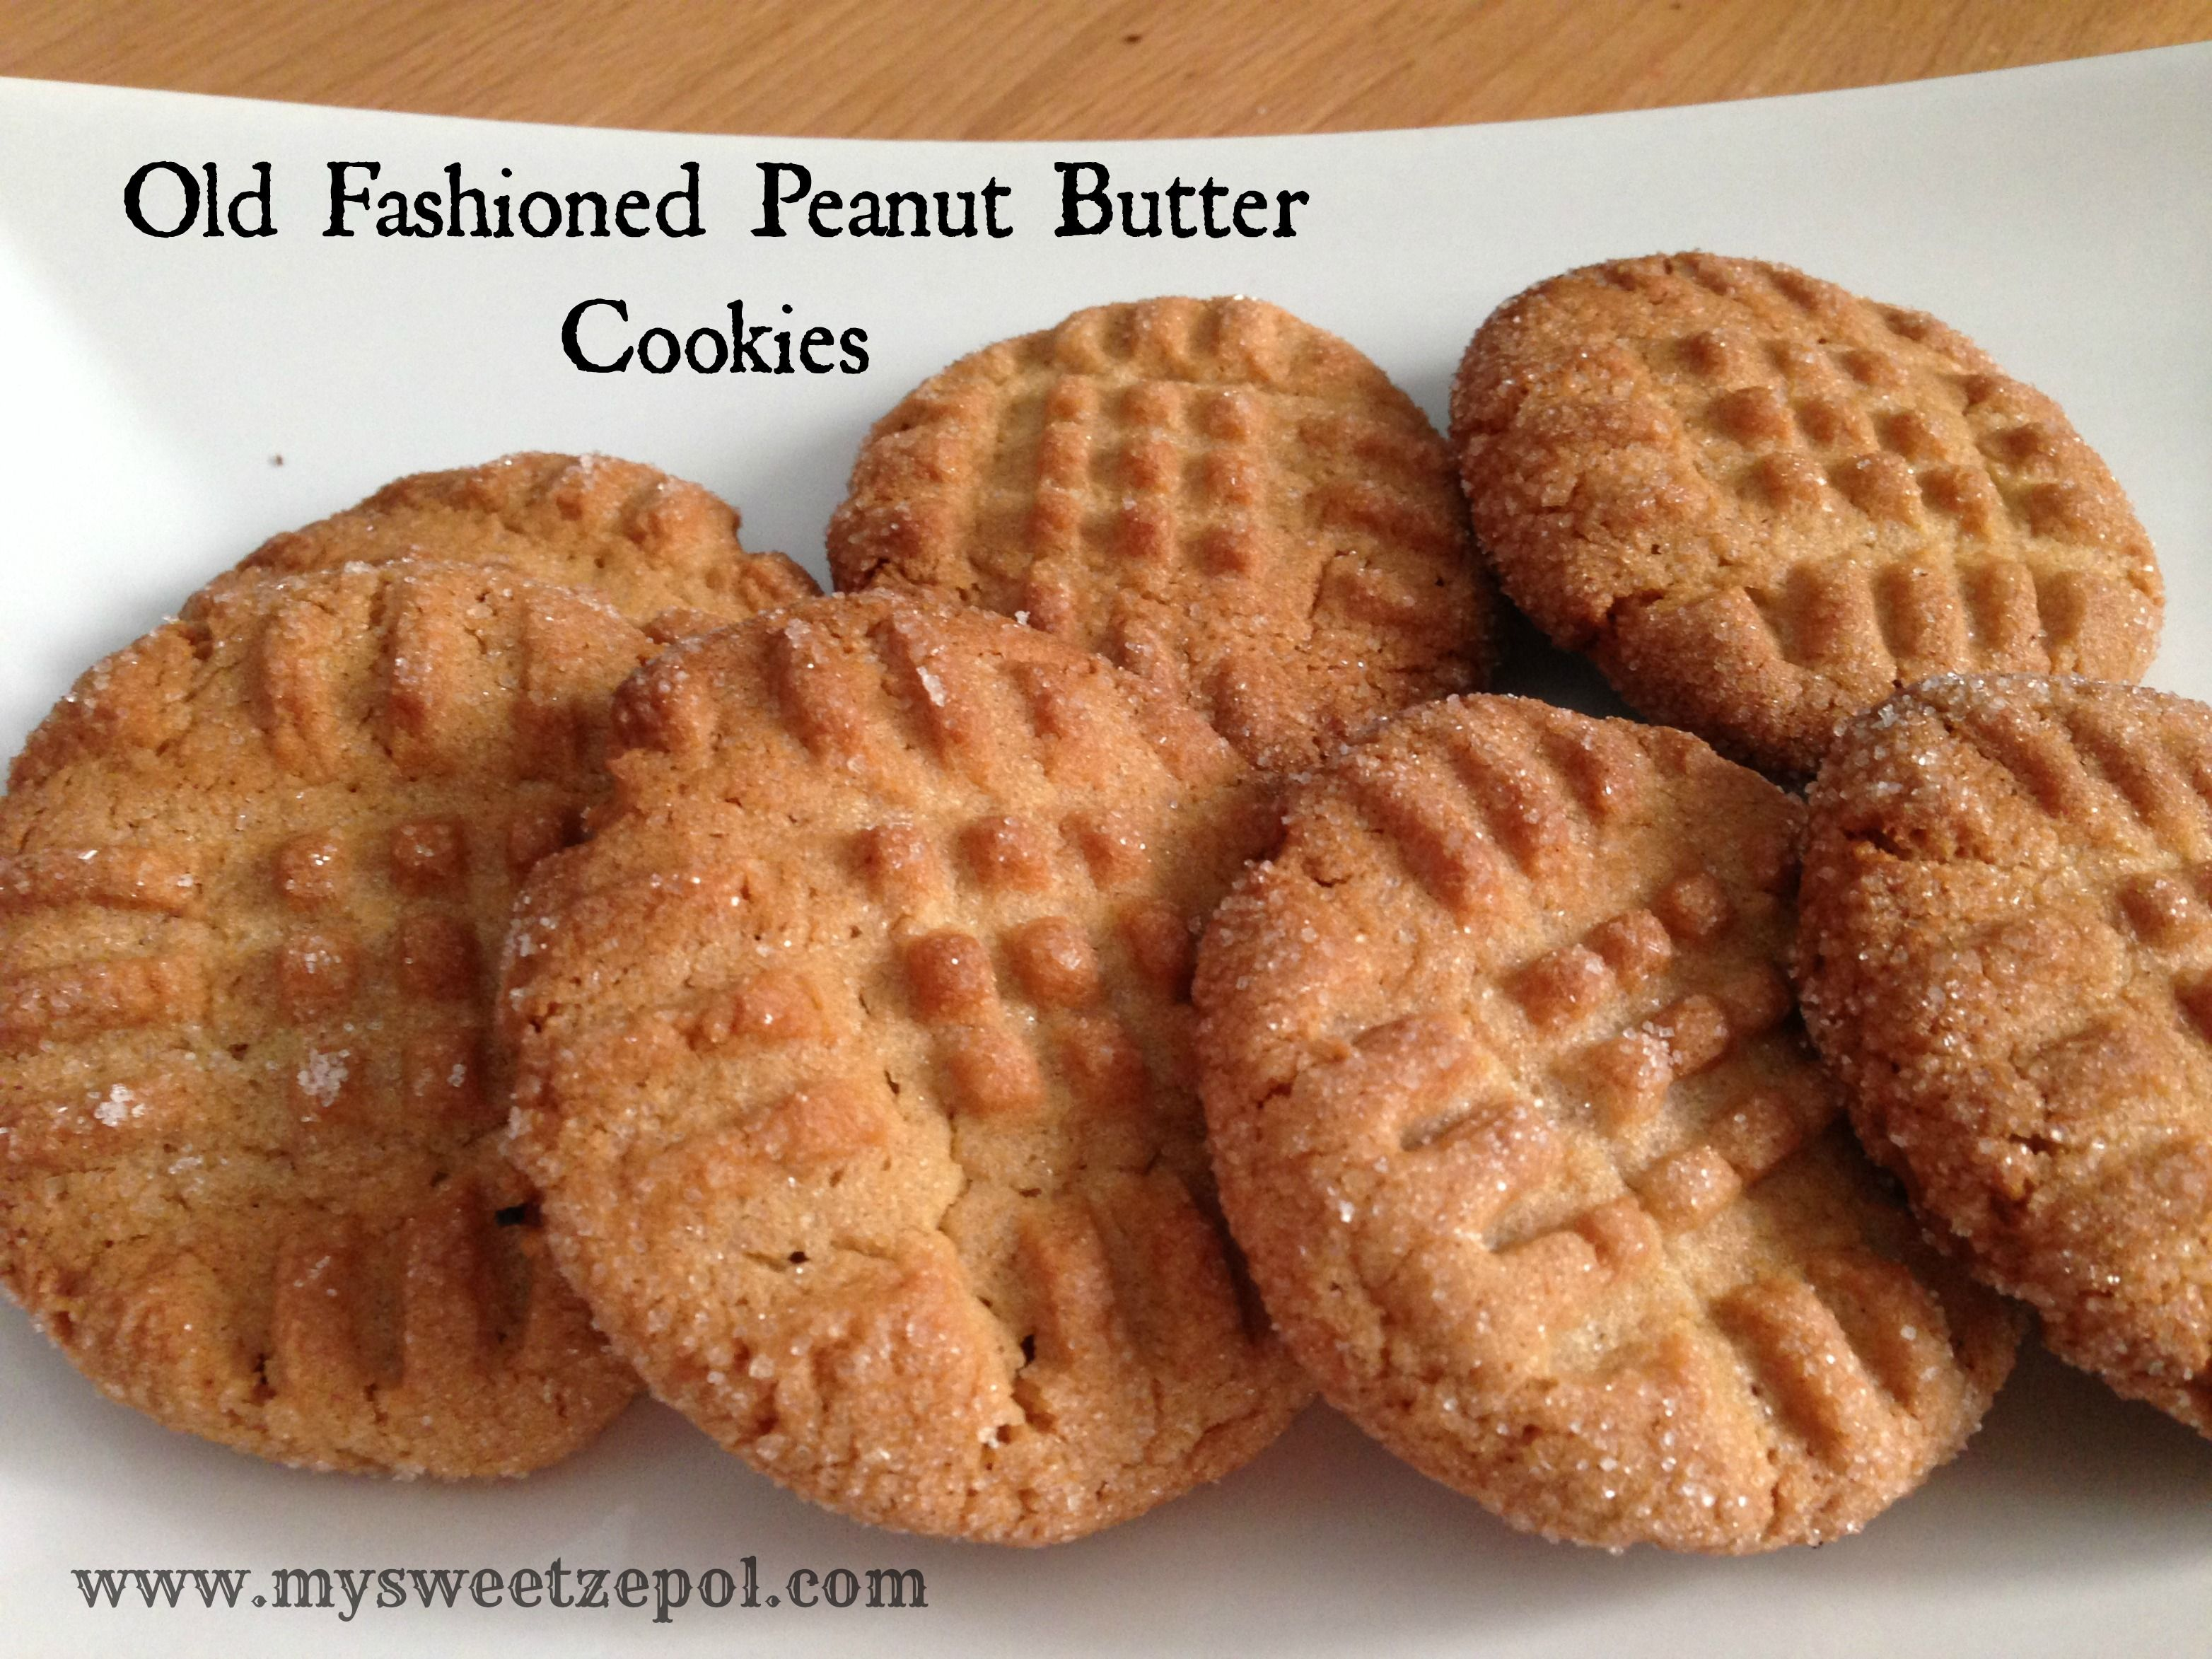 My Sweet Zepol » Old Fashioned Peanut Butter Cookies